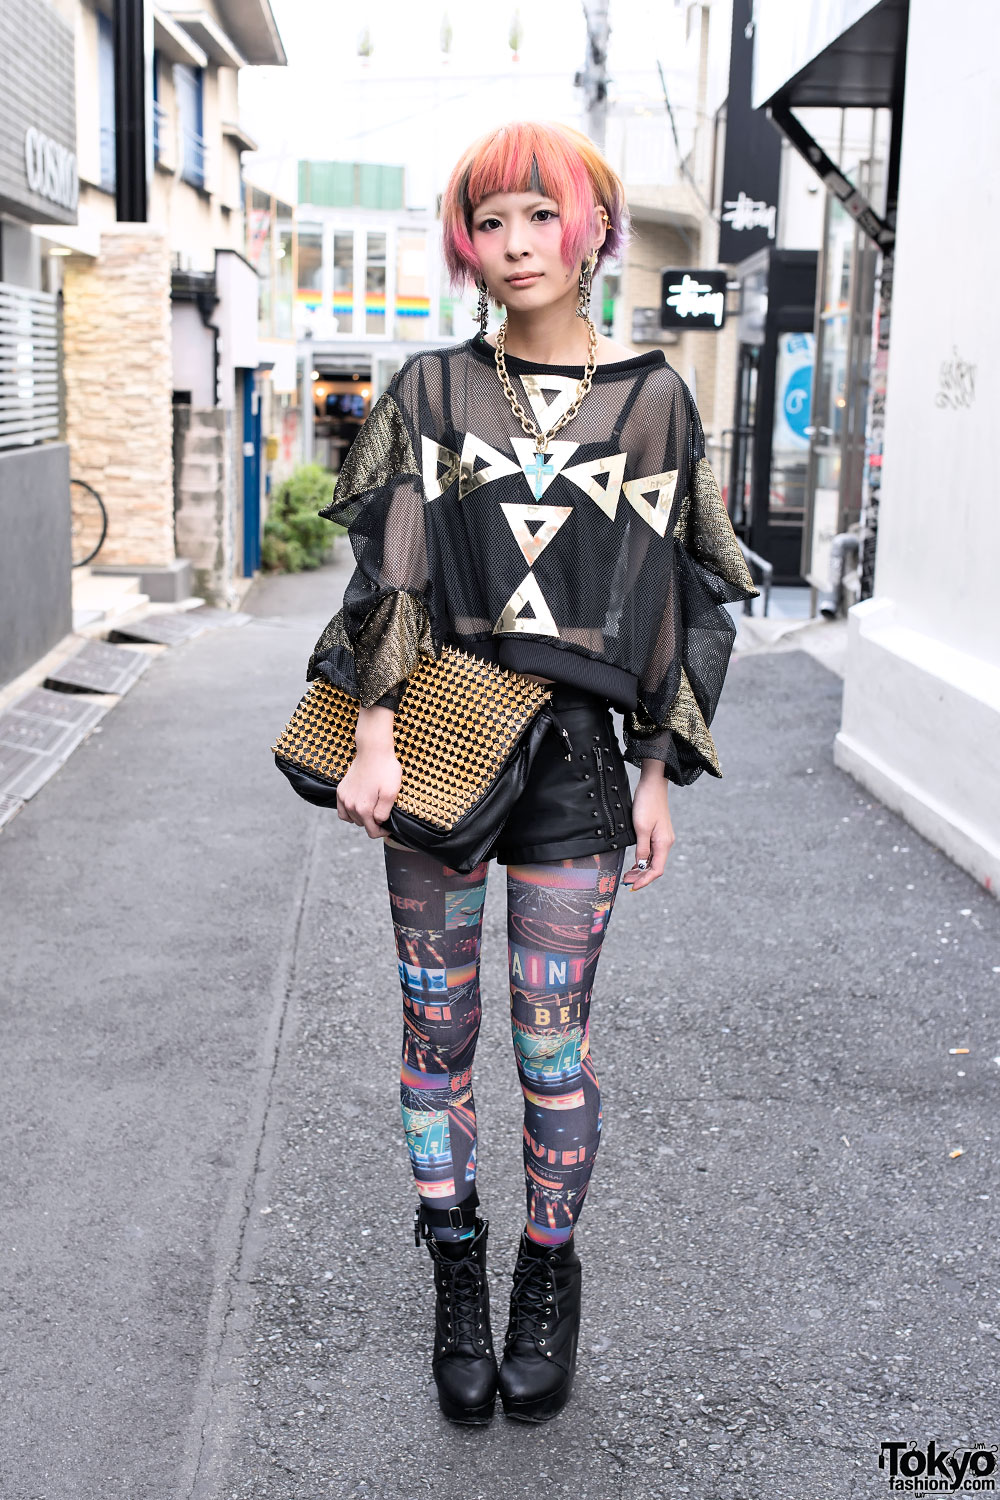 Dog Harajuku Fashion Fangophilia Rings Myob Nyc Bag: Unicorn Earrings, Colorful Hair, Avantgarde Tights & Dog